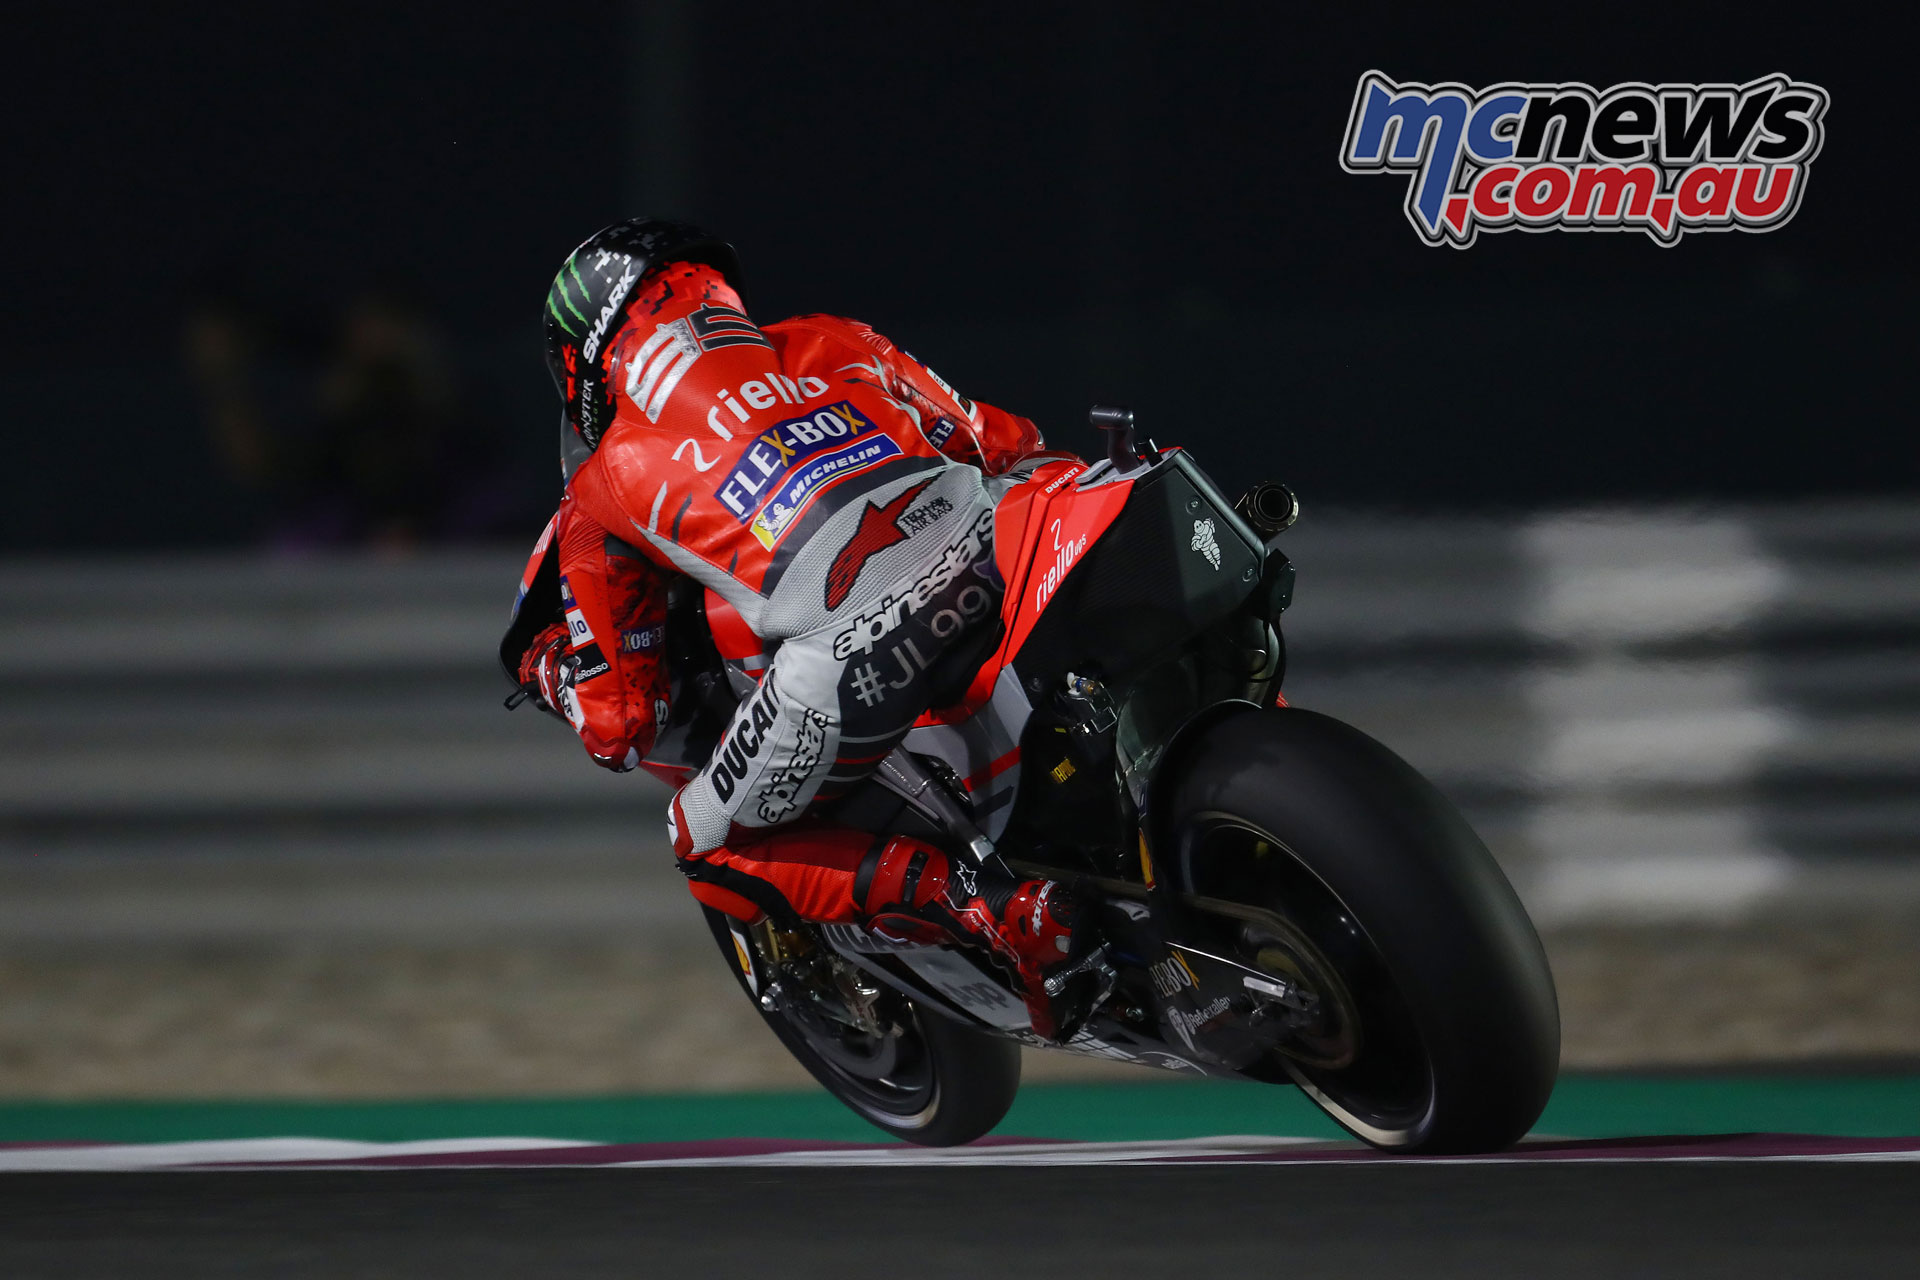 2018 Qatar Motogp Images Gallery D Mcnewscomau